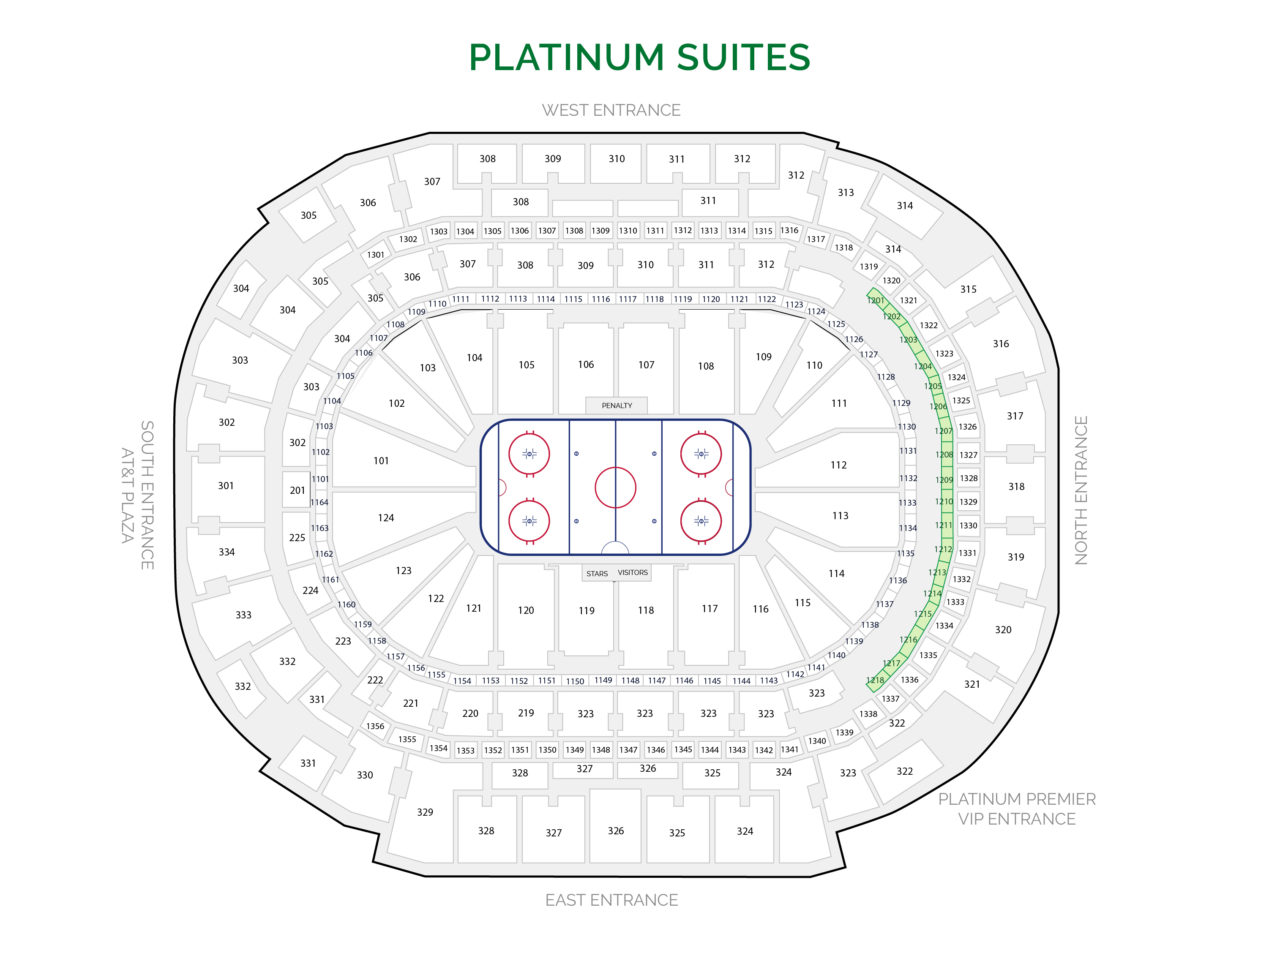 Dallas Mavericks Suites - Platinum